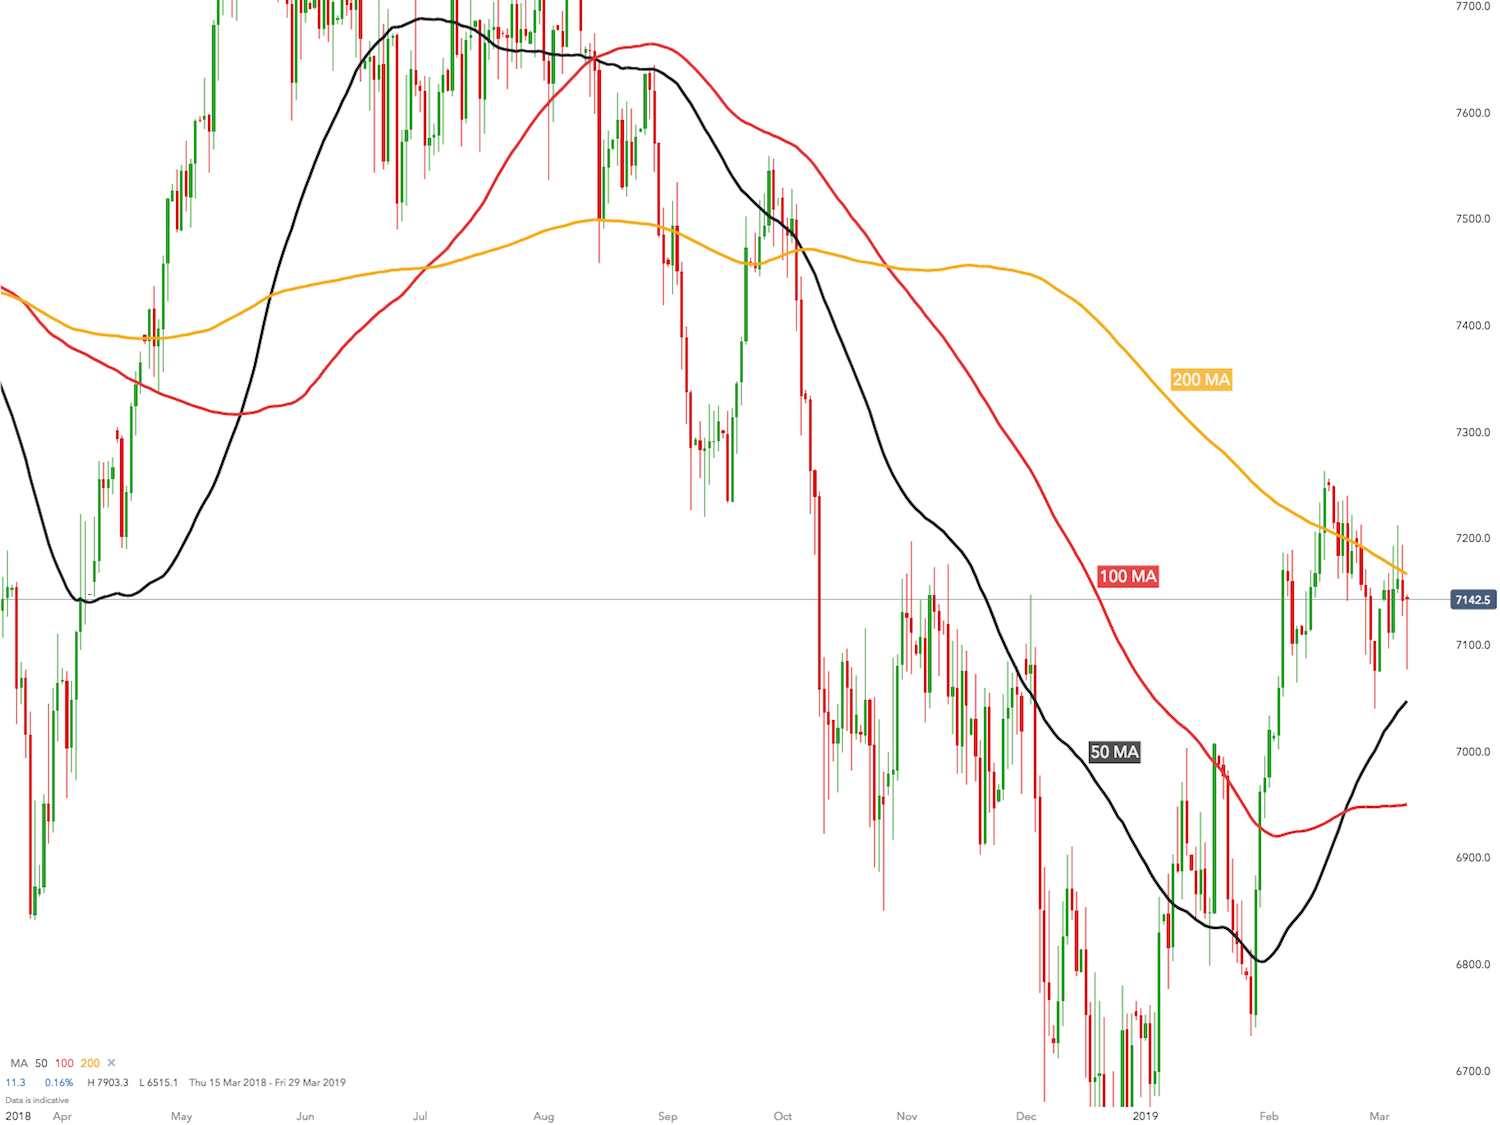 How Moving Averages can help improve your investing decisions using worked examples